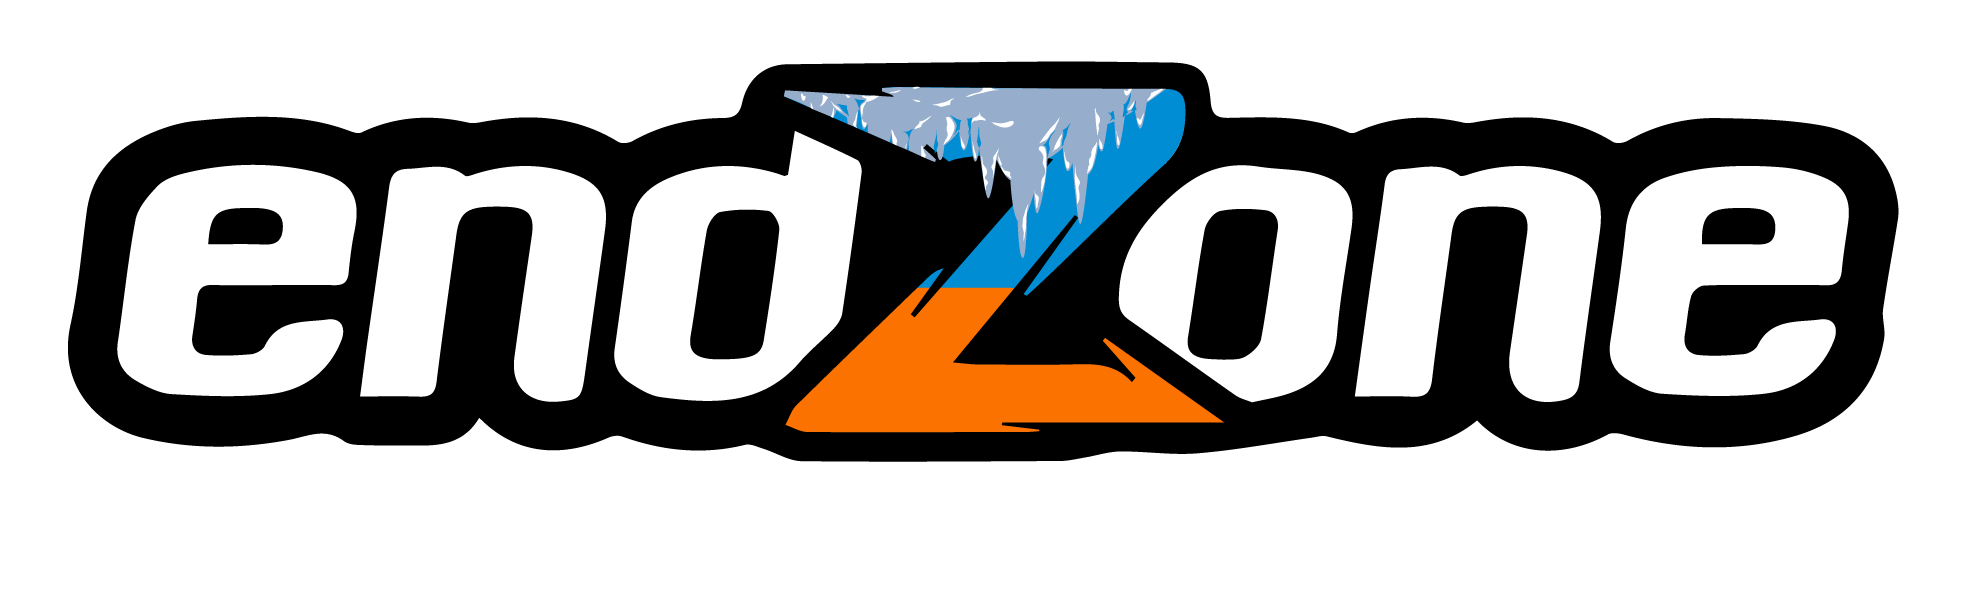 EndZone Cooling & Heating